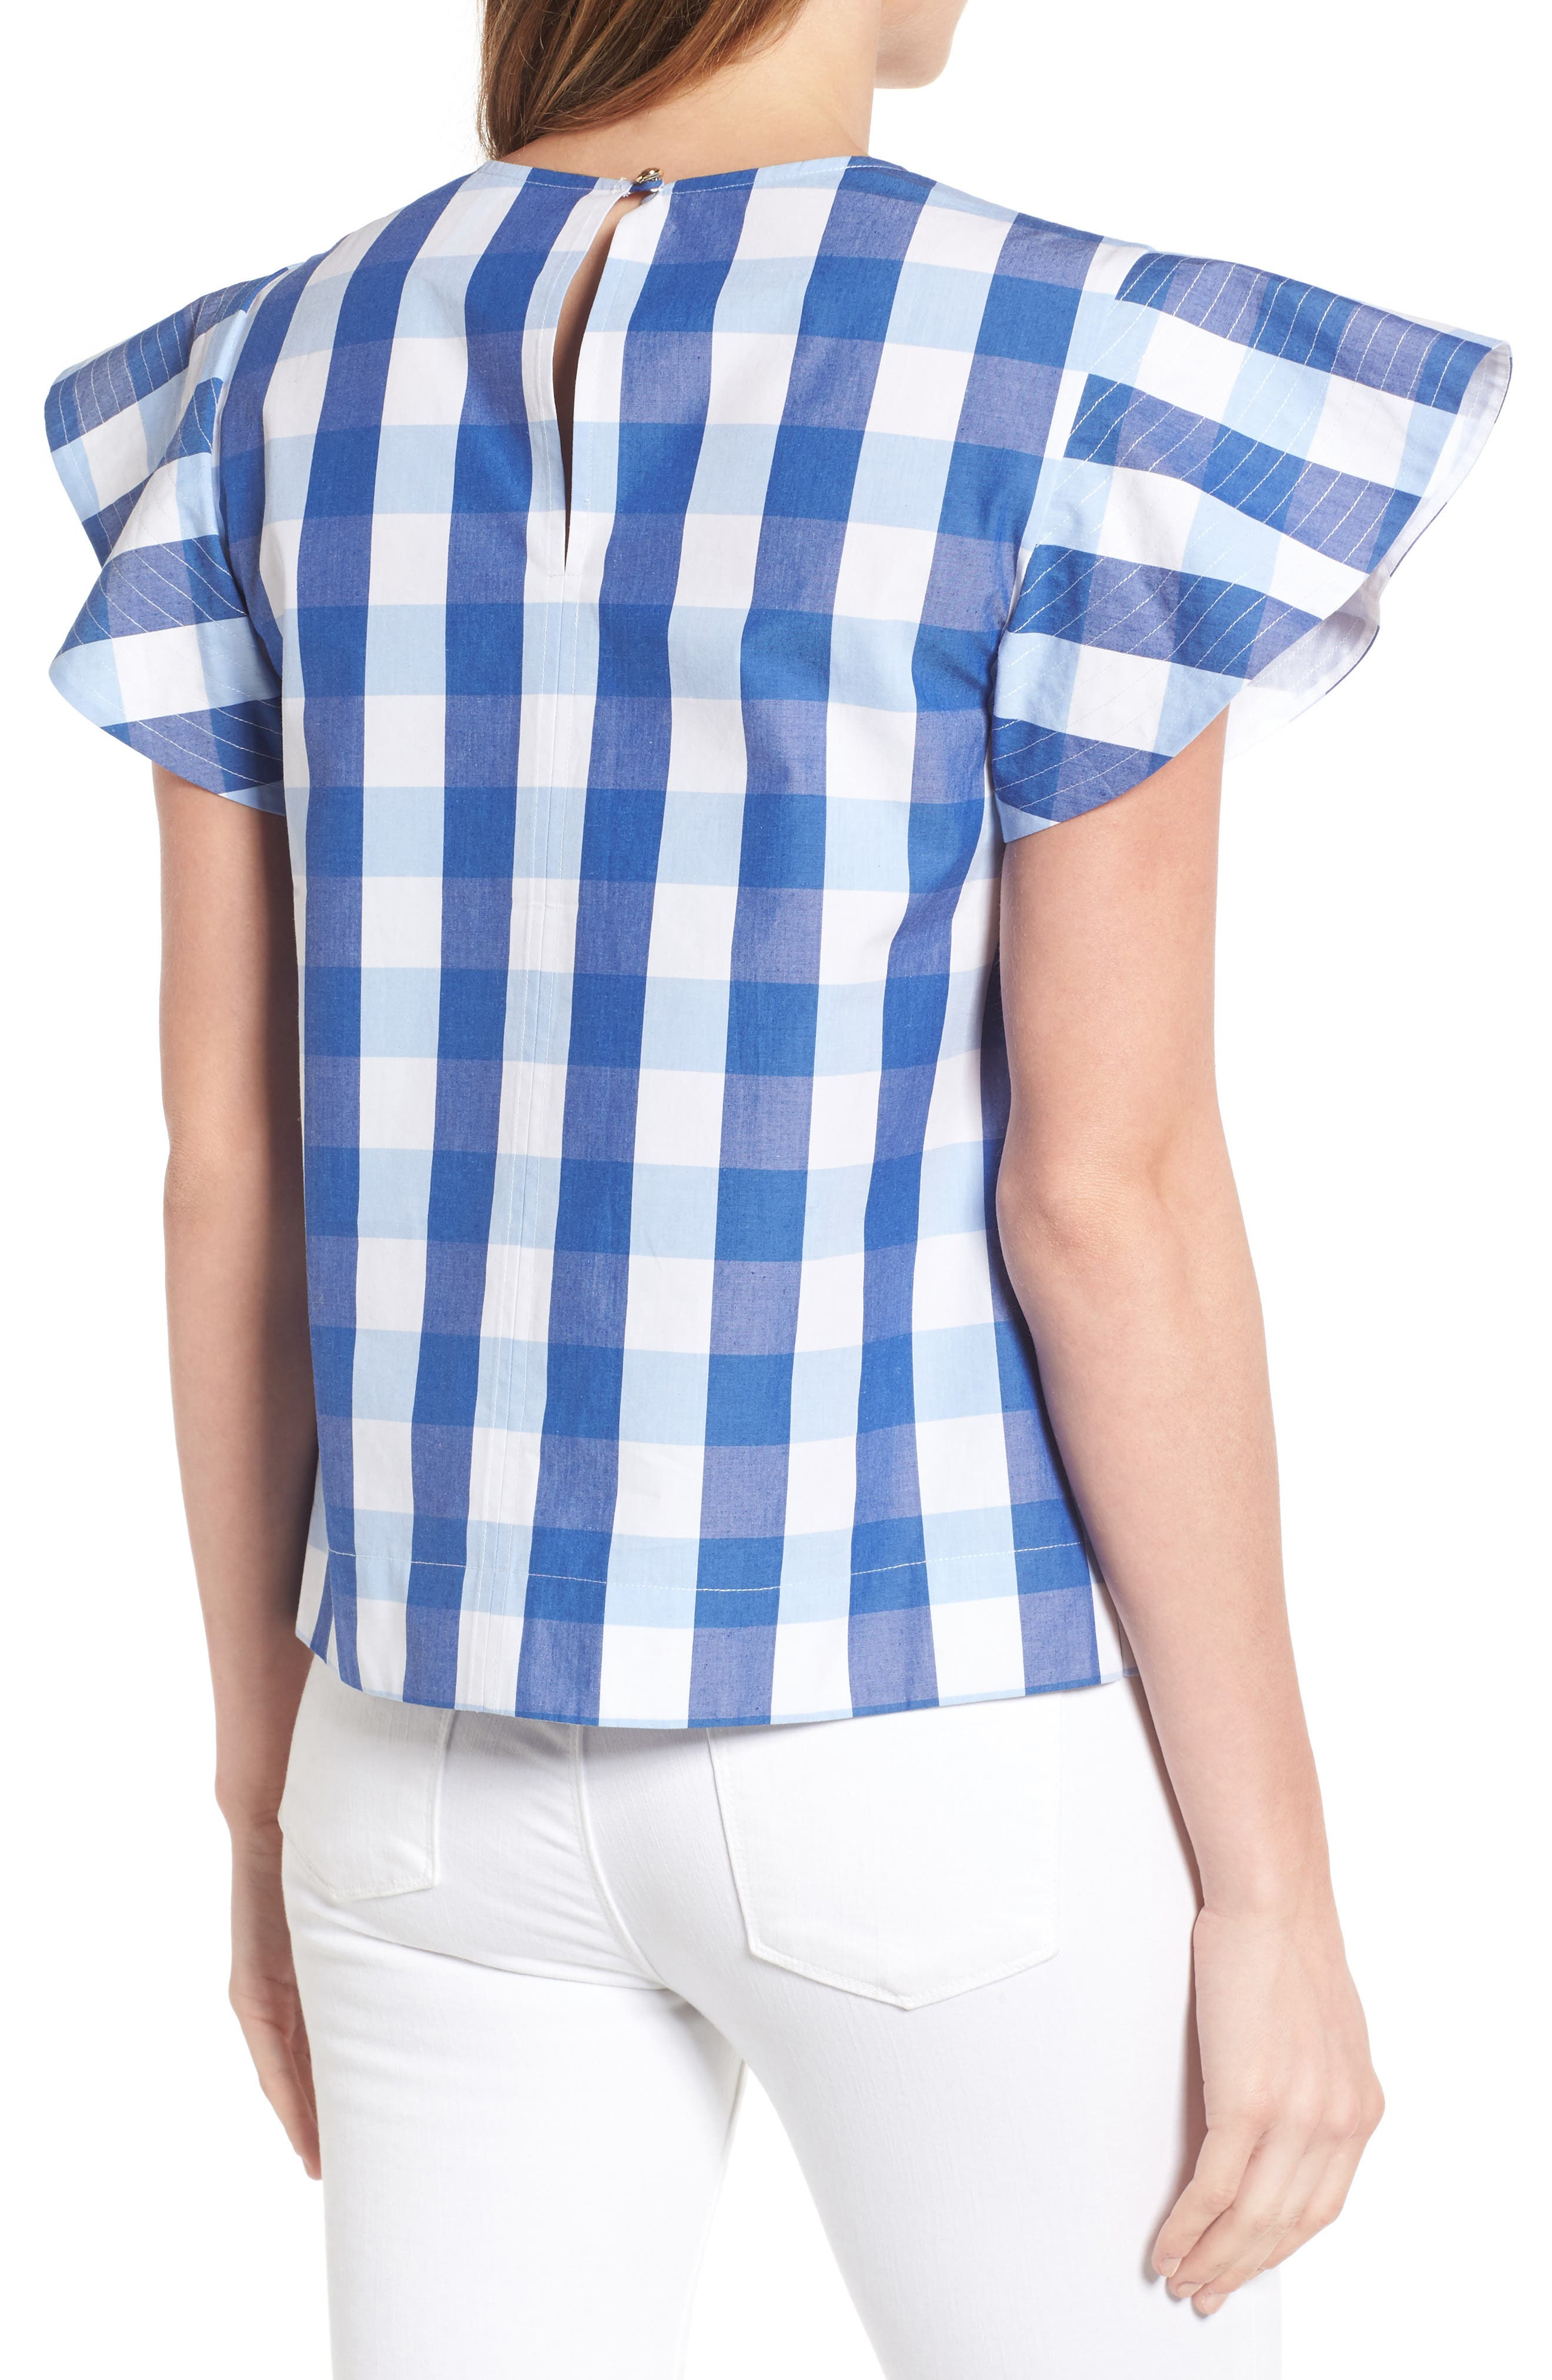 Alternate Image 2  - Draper James Cloister Gingham Cotton Top (Nordstrom Exclusive)